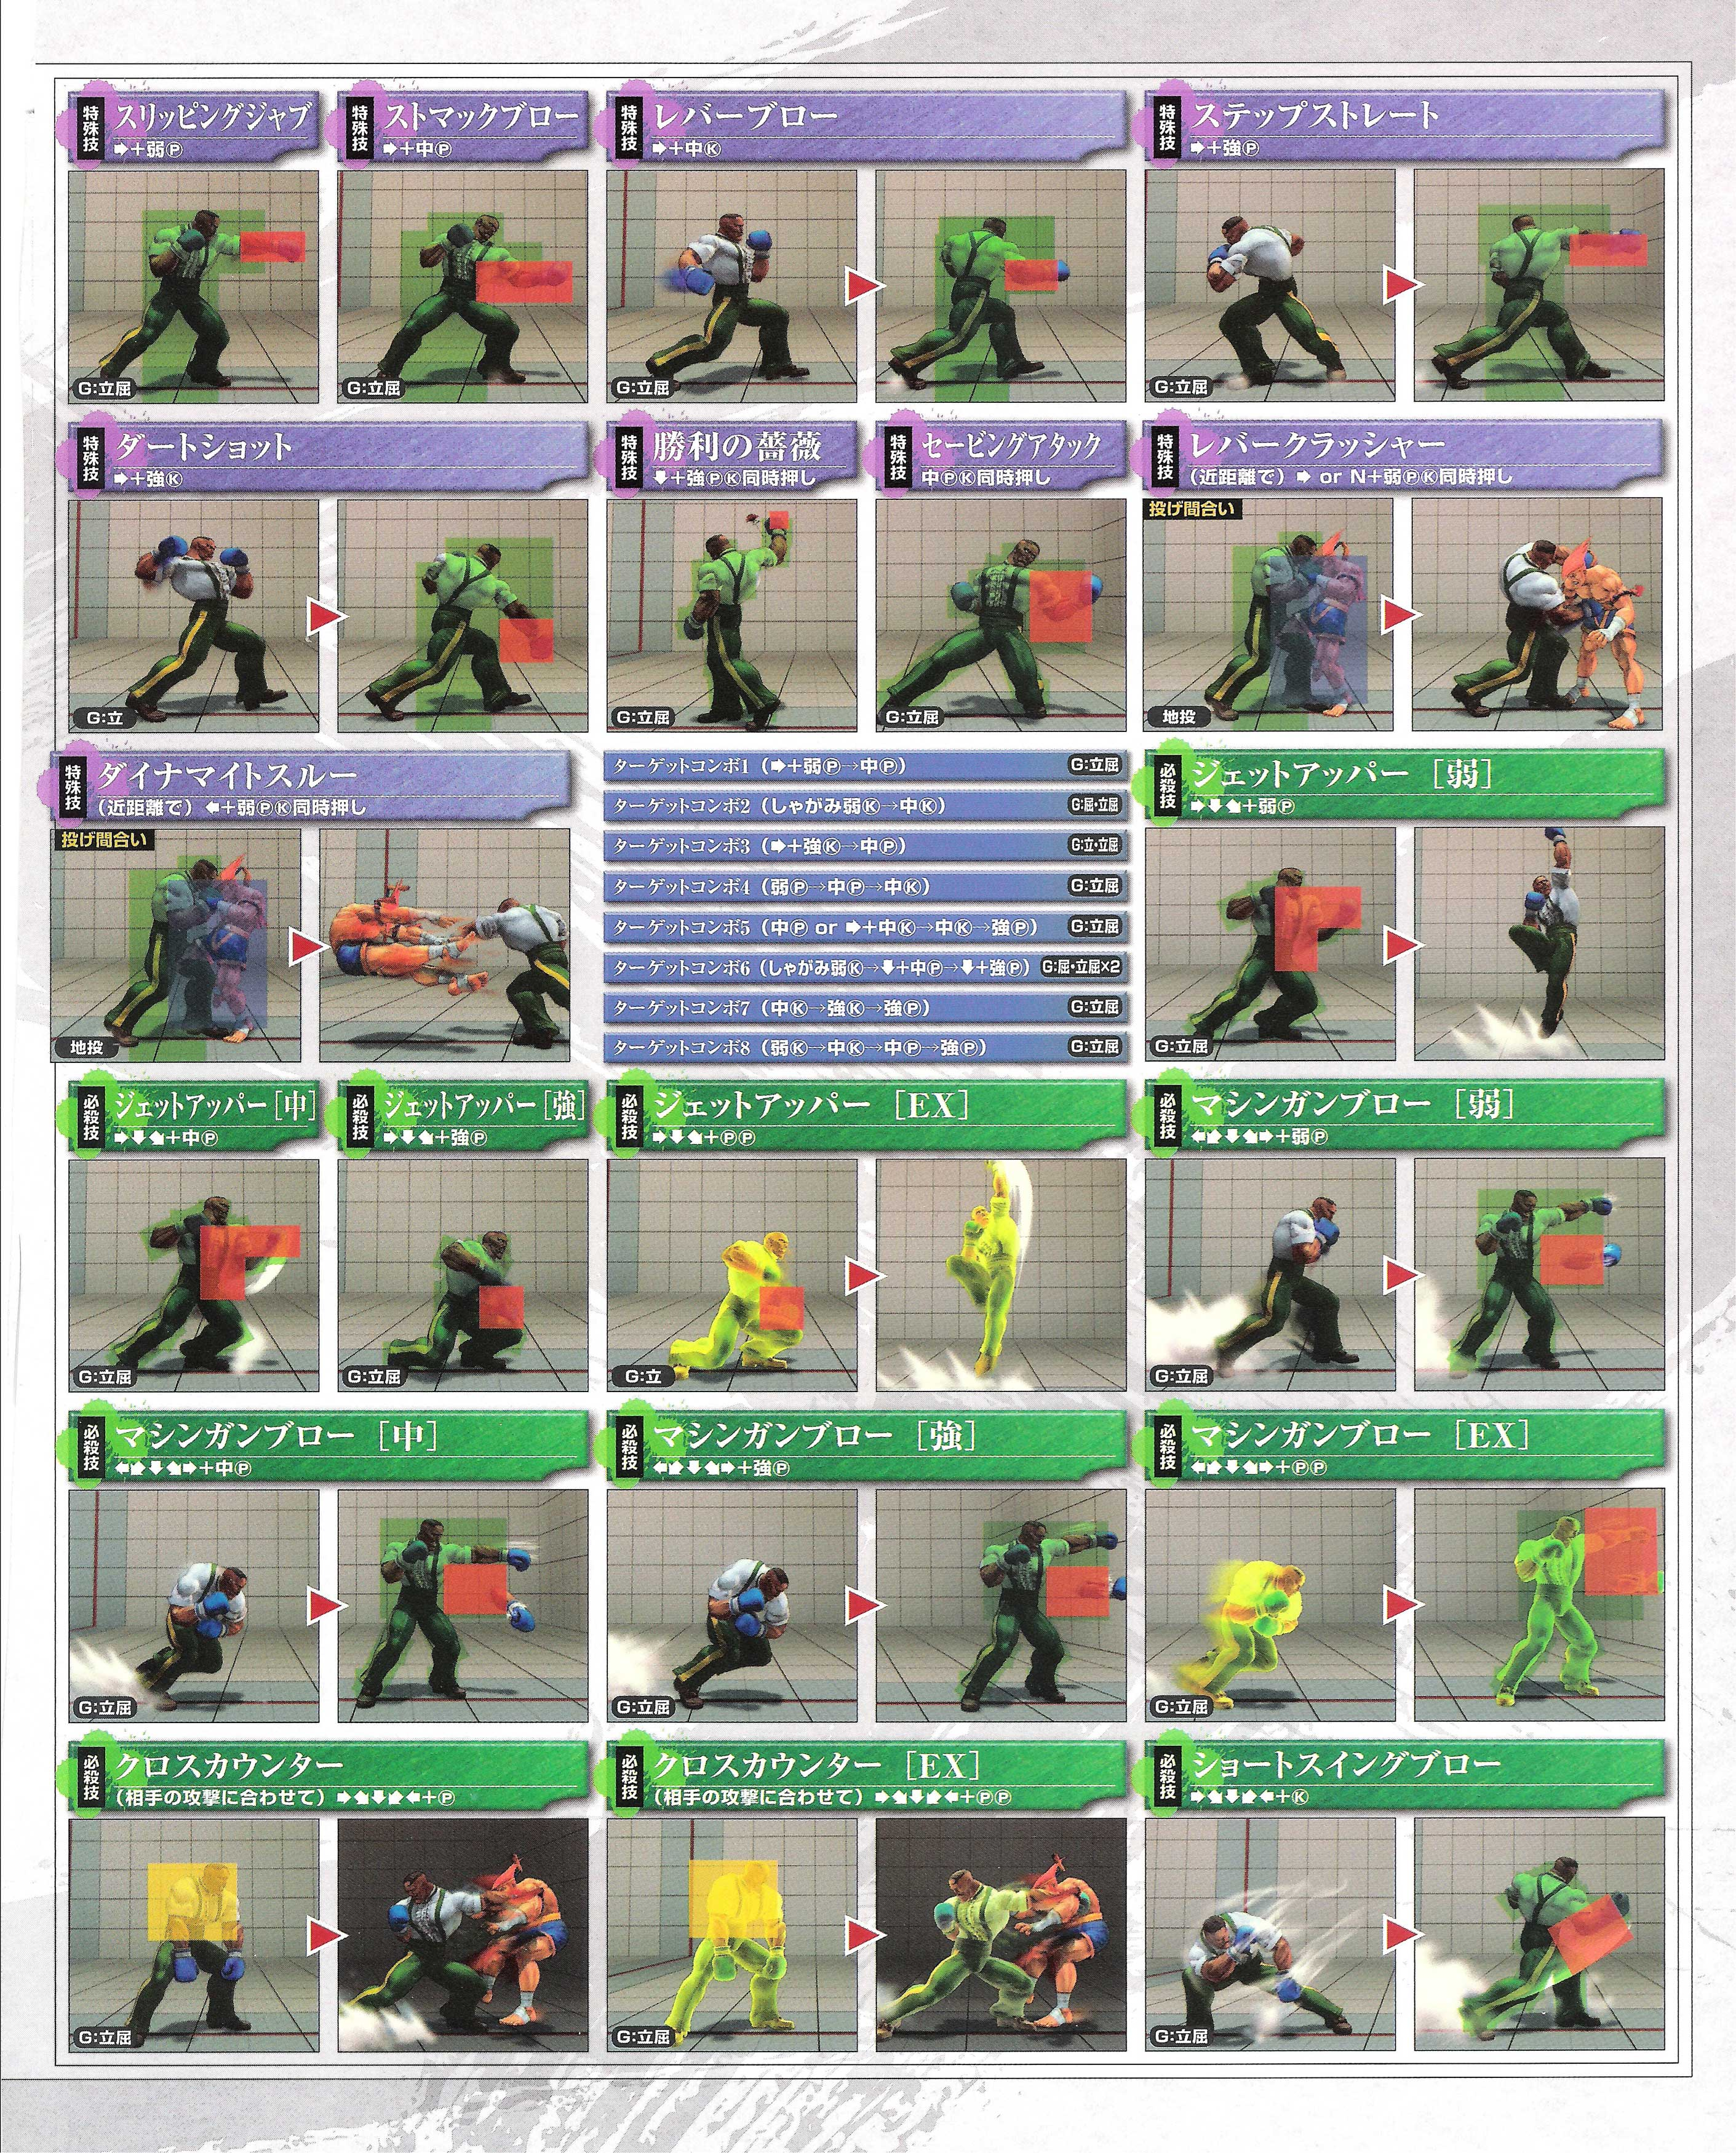 Dudley's hit box information for Super Street Fighter 4 Arcade Edition image #2